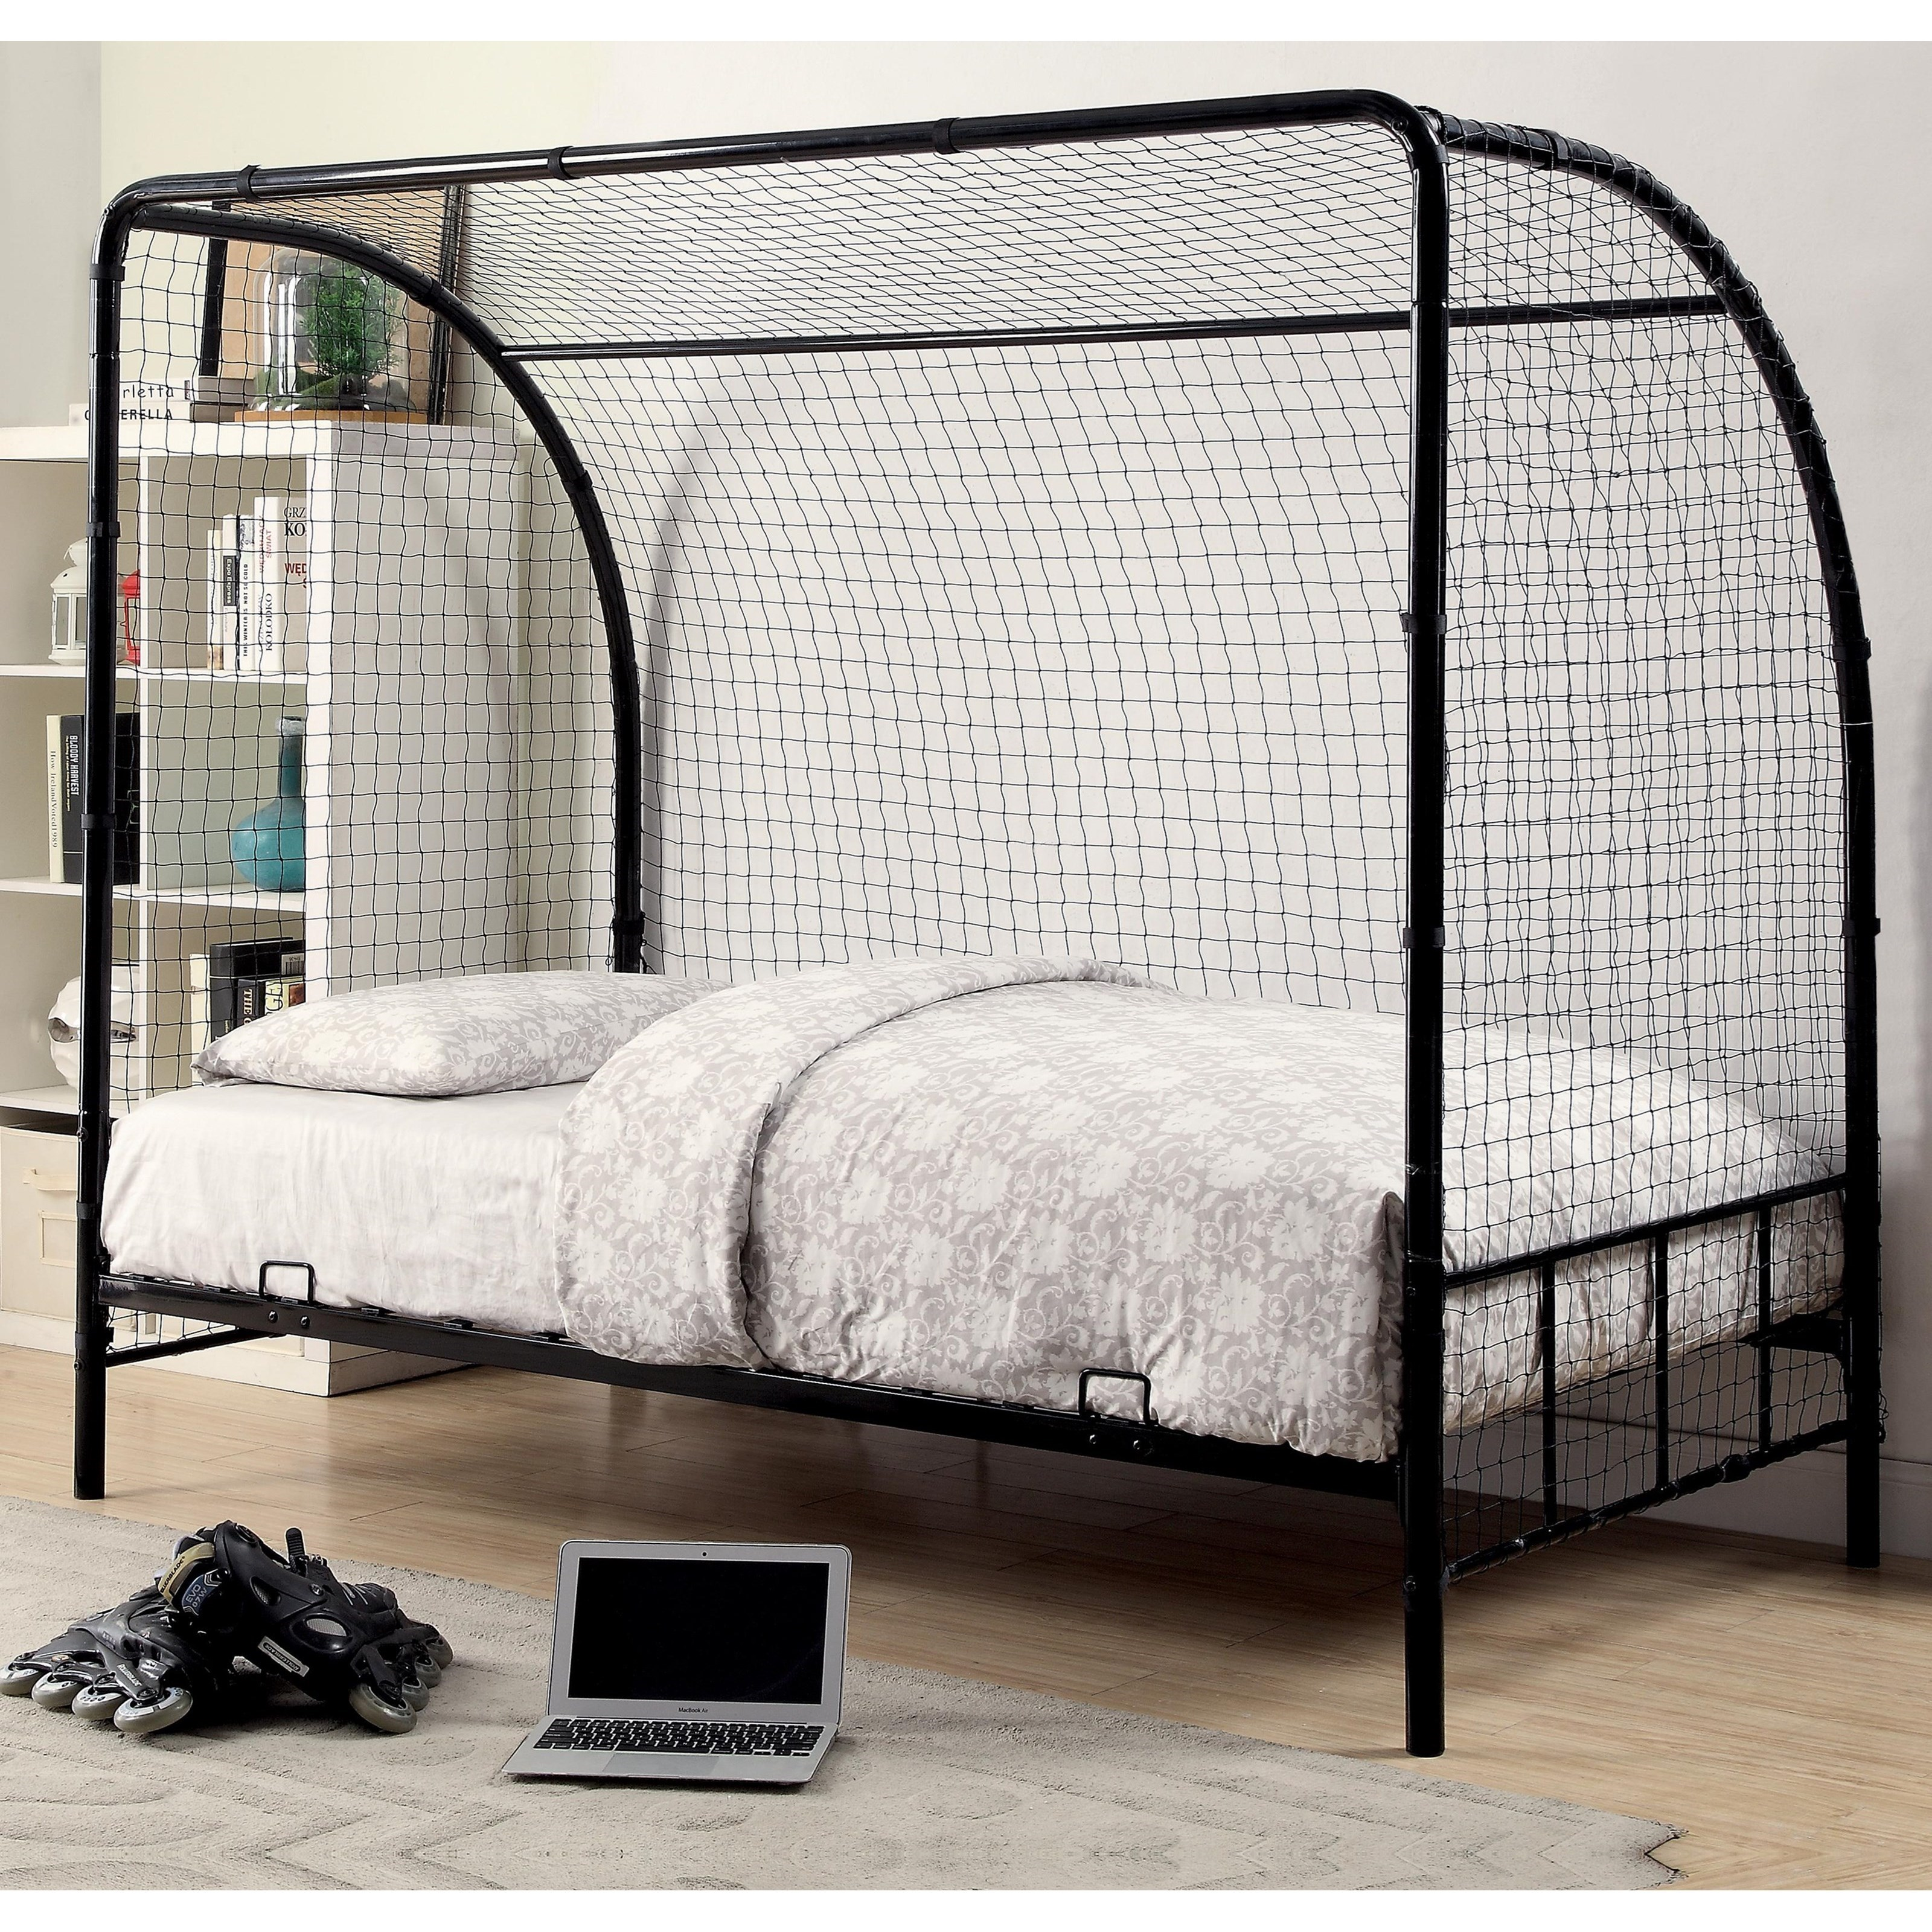 and frame contemporary loccie your polished full for rod design ideas an sheet beyond gardens only nickel target headboards king dazzling bath high appealing tall homes bedroom making iron of metal headboard copper size furniture footboard marvelous wrought better satin outside white enchanting twin beds